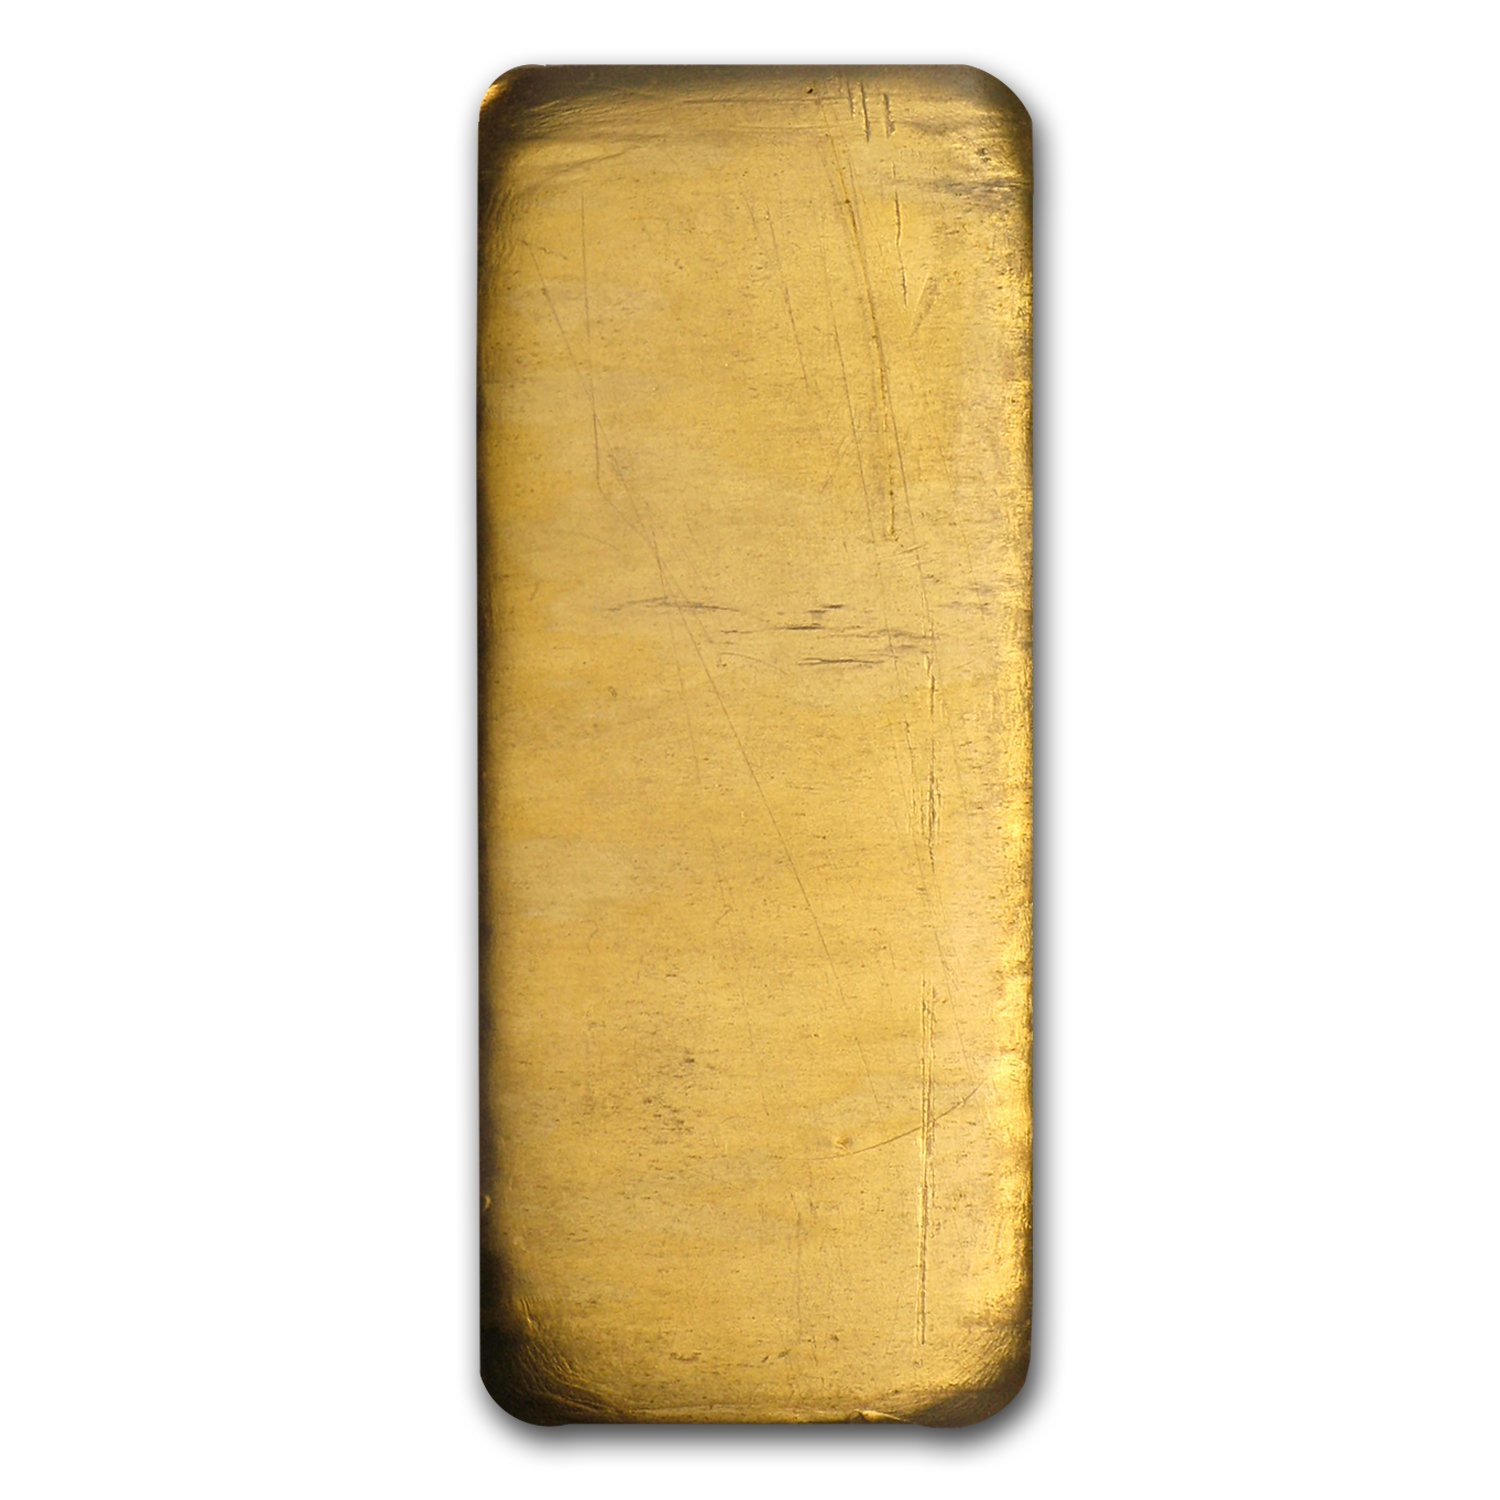 20 gram Gold Bars - Degussa (Stamped)